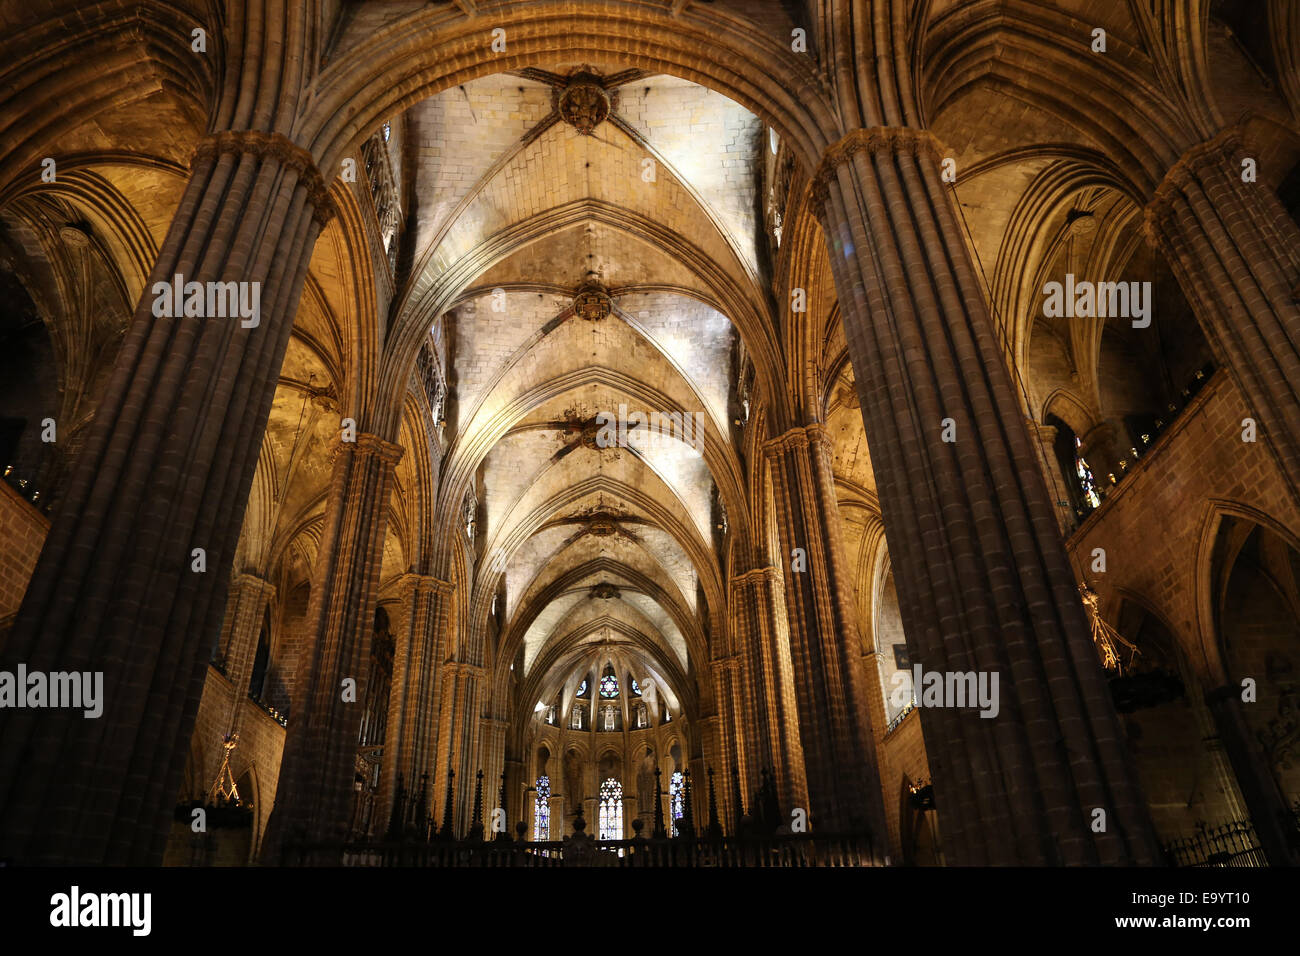 Spain. Catalonia. Barcelona Cathedral. Inside. 13th century. - Stock Image